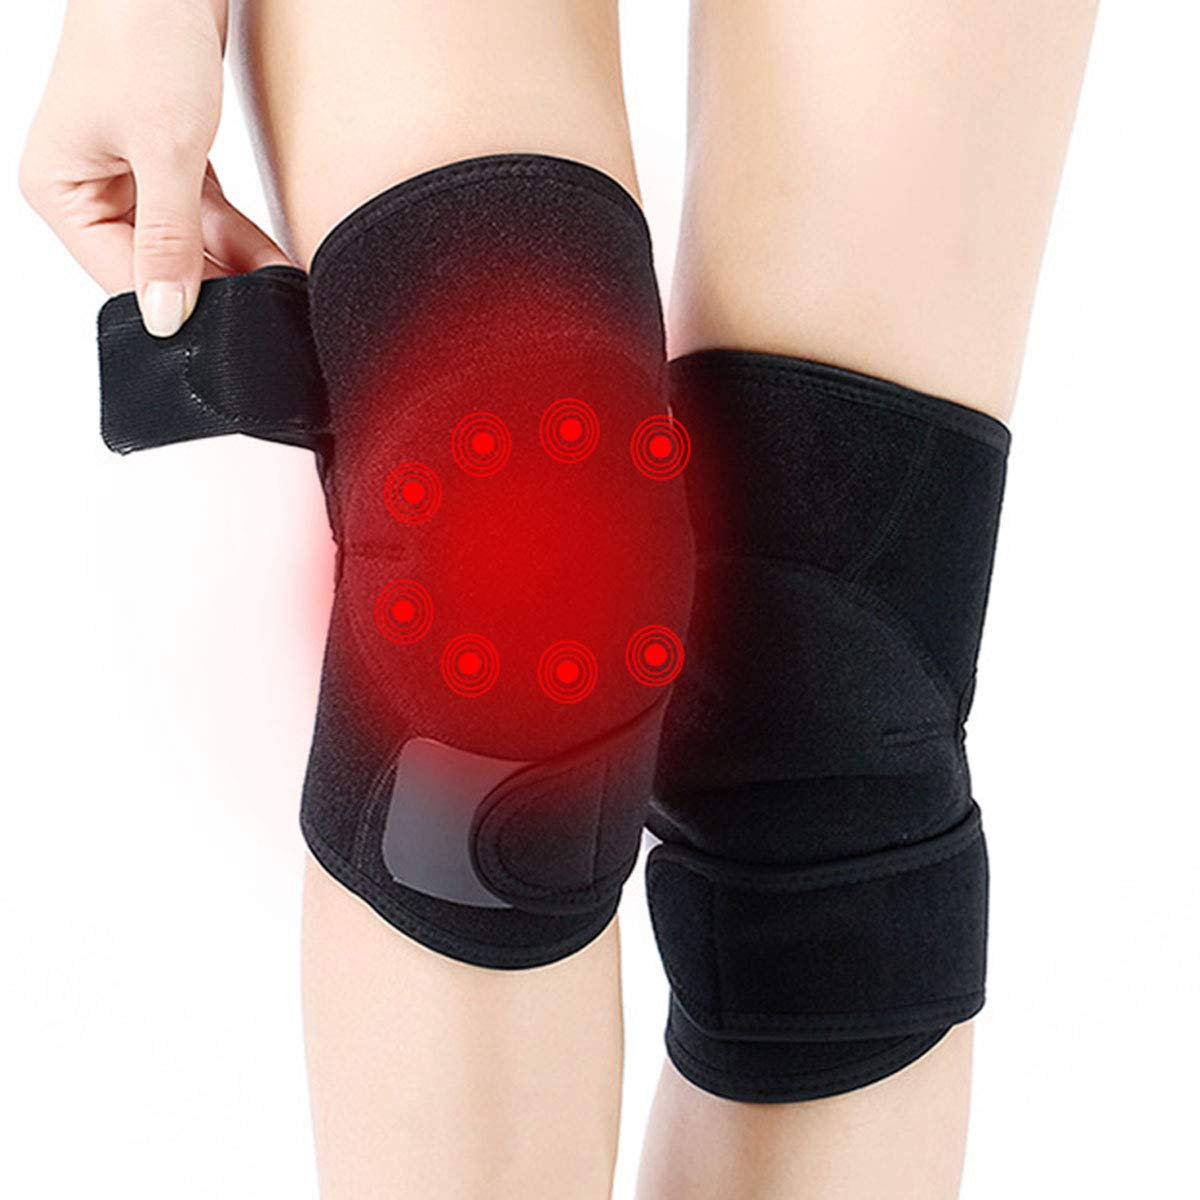 Self-heating Tourmaline Knee Brace | 1 Pair, with Magnet, for Men and Women, Help the Injuries Recover, Relieve the Pain, keep Warm for Knee, Thermal Therapy .